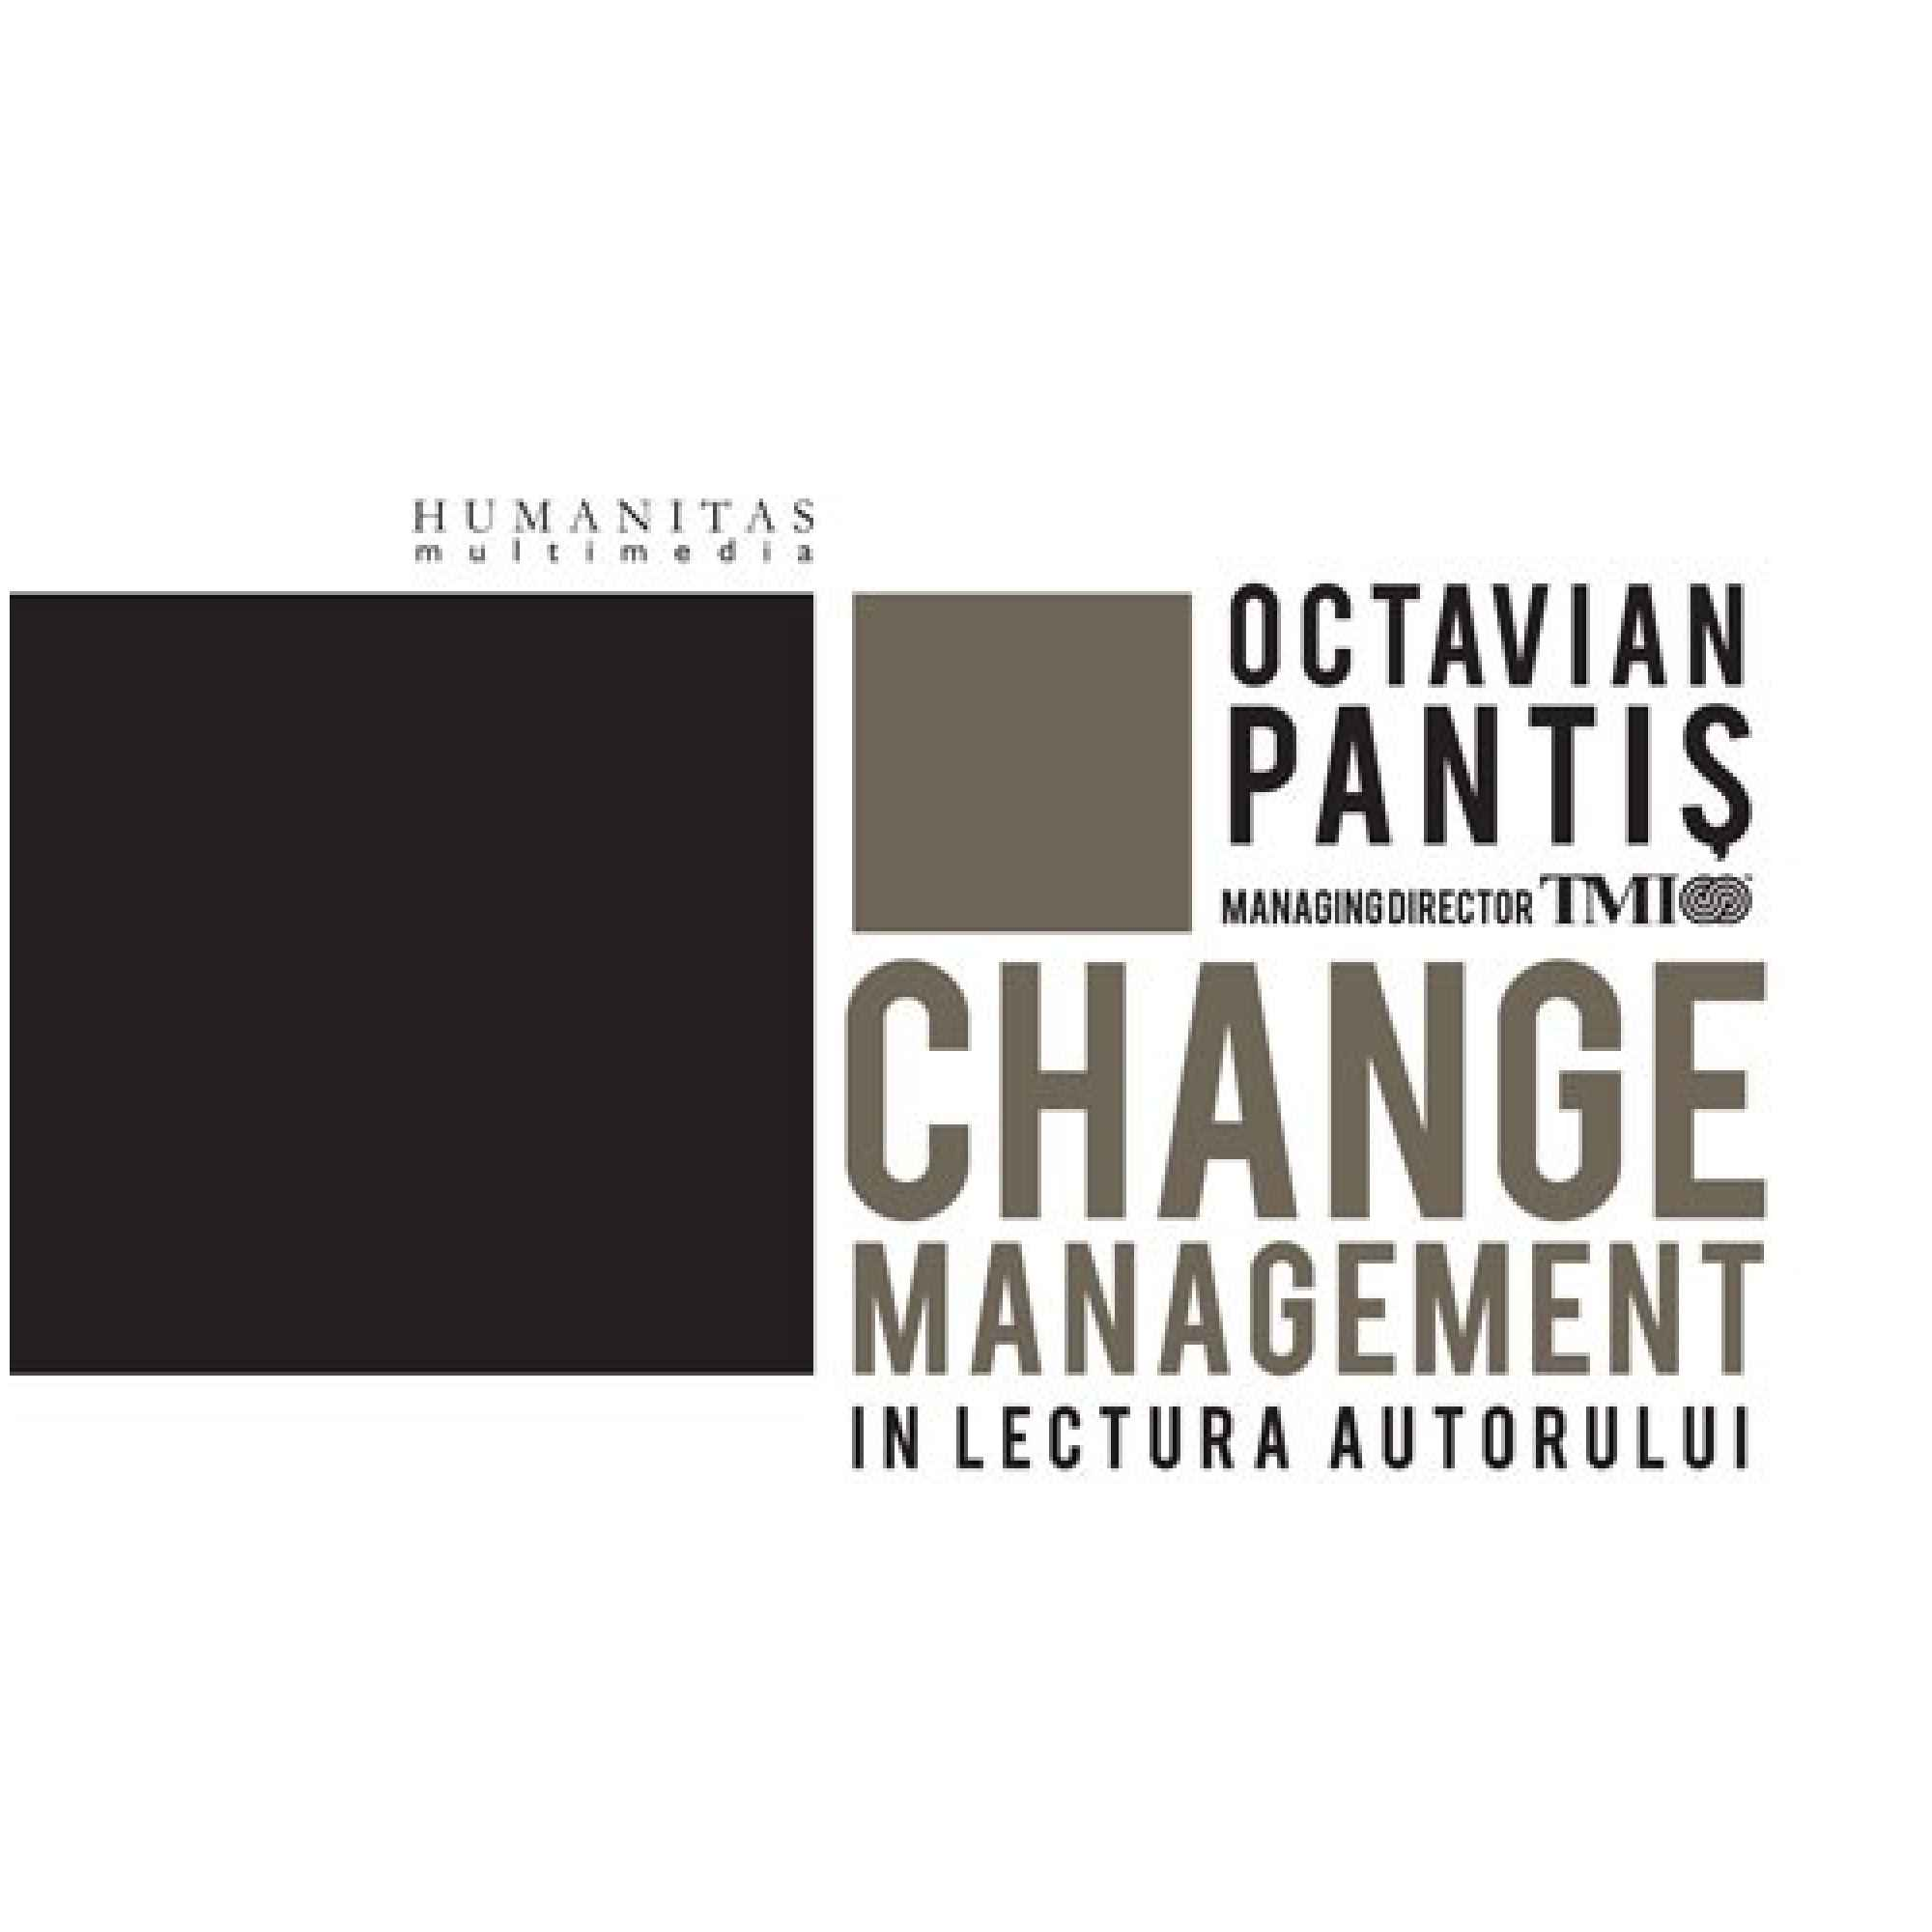 Change Management; Octavian Pantiş